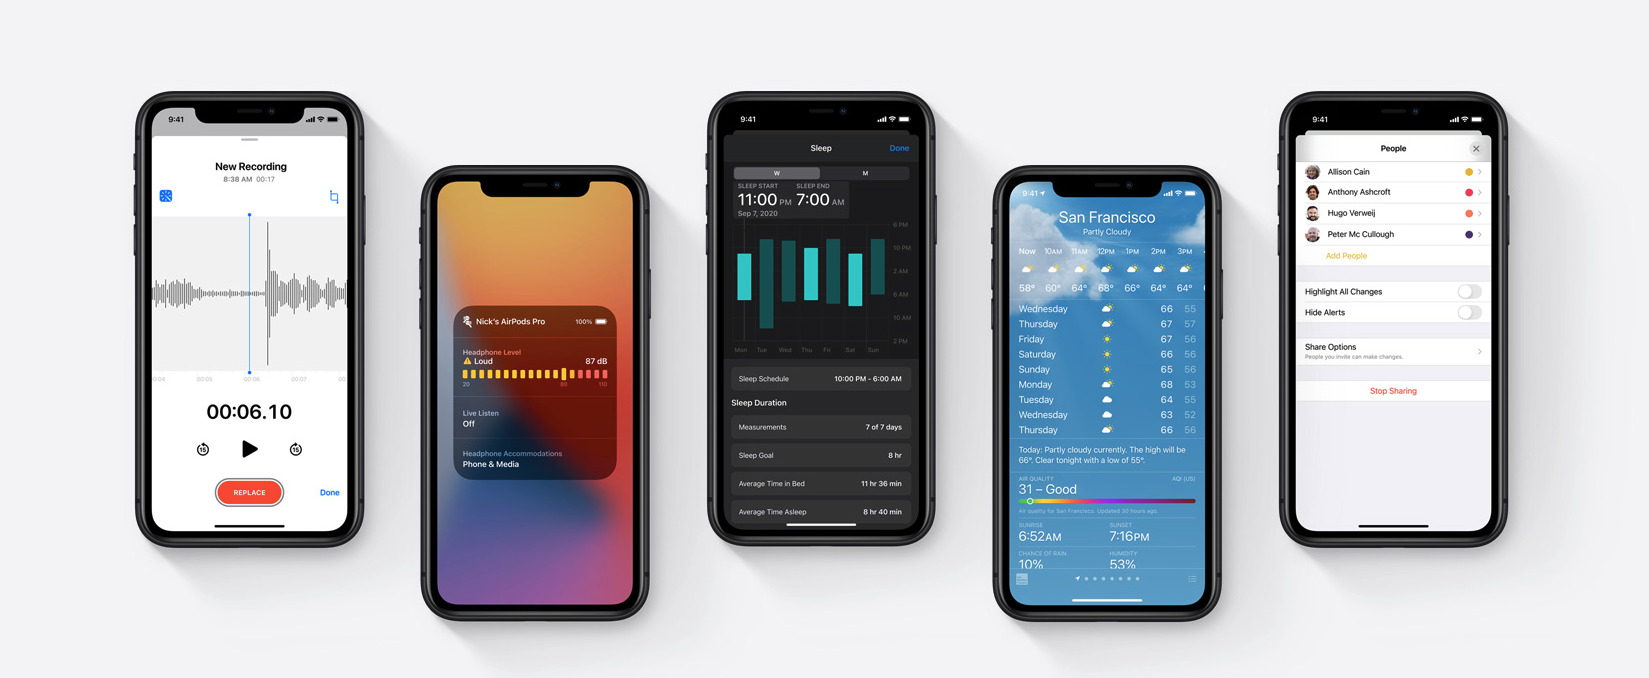 iOS and iPadOS 14.5 Arrive with Apple Watch iPhone Unlock Lock and More